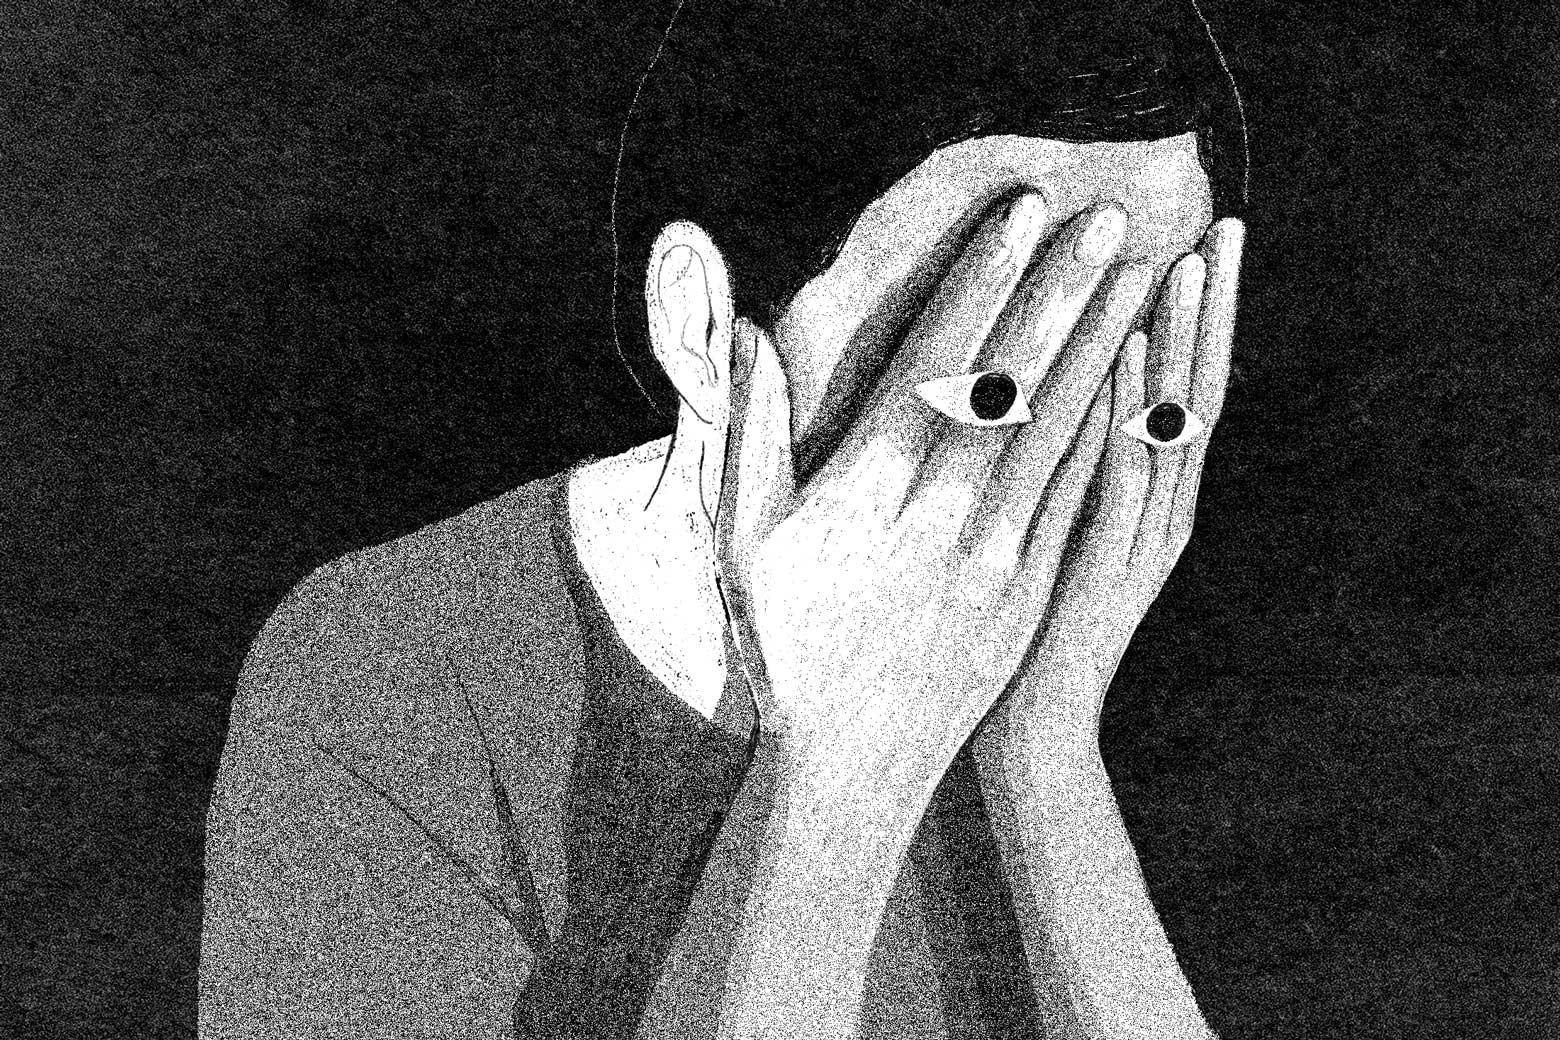 Person clasping their face with their hands, with open eyes emerging through, in a dark void.